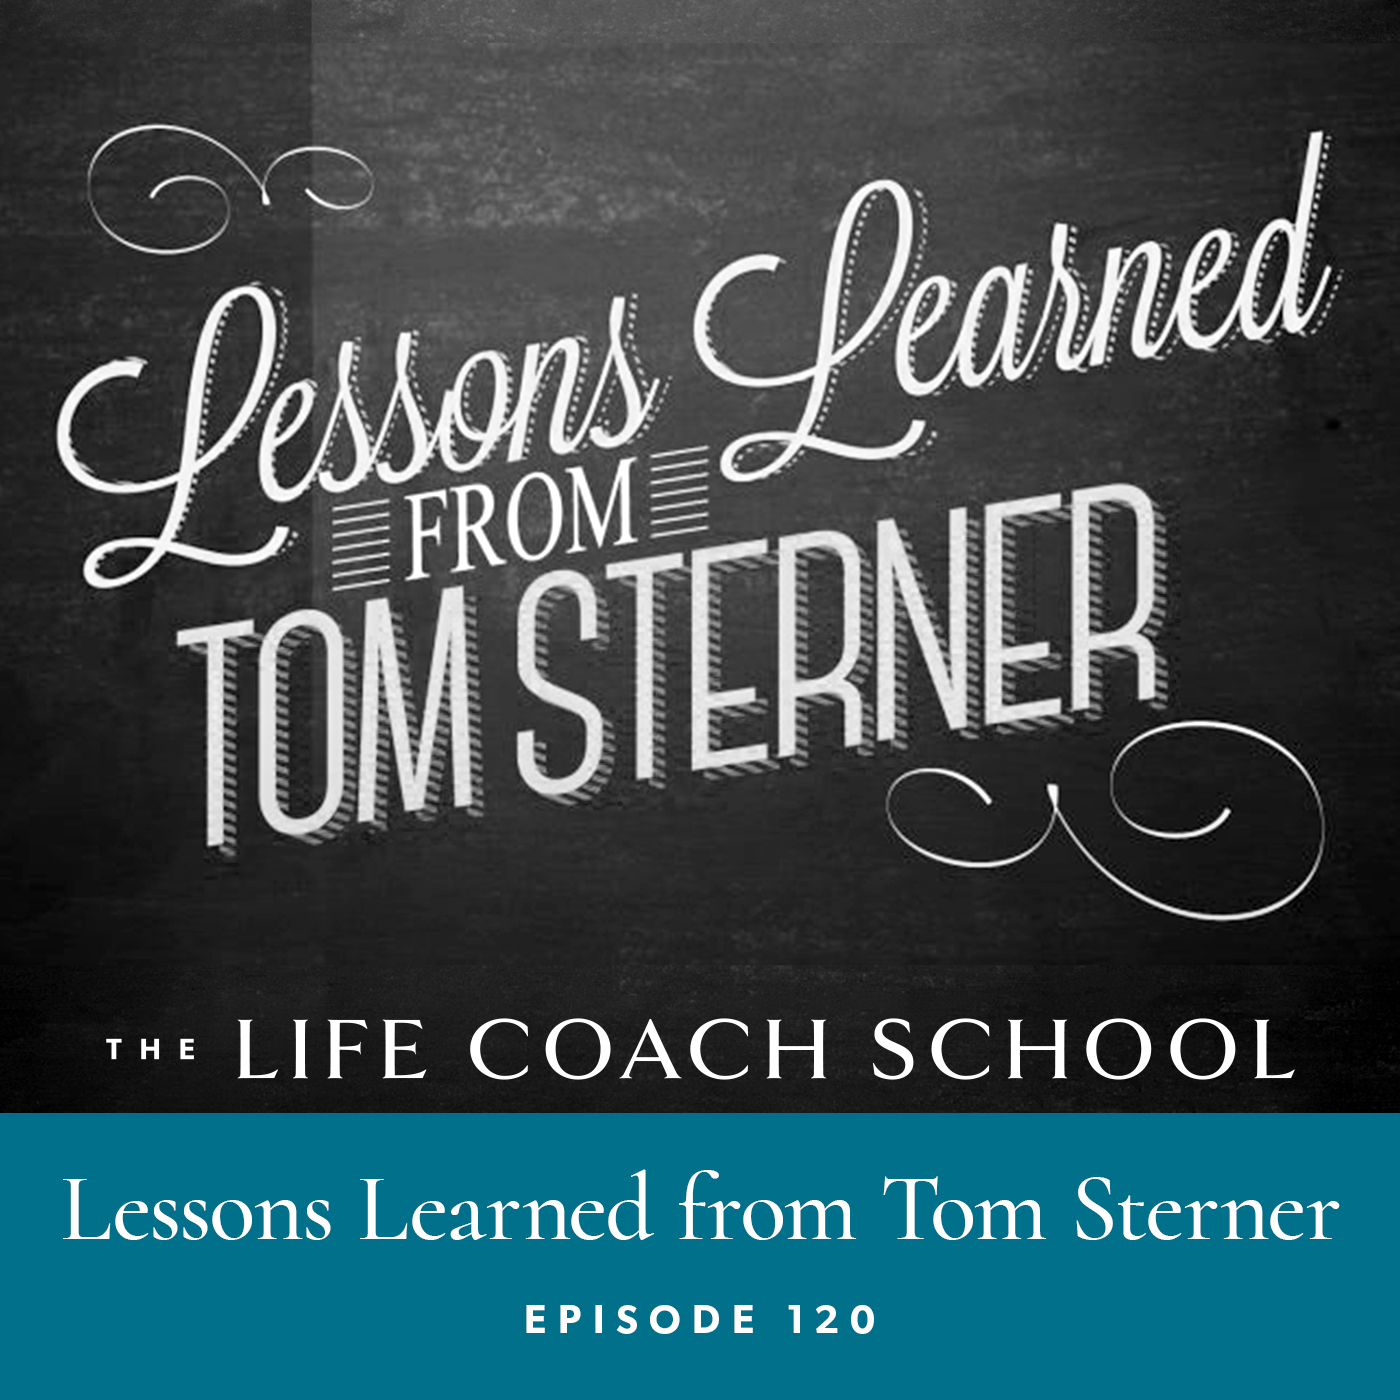 The Life Coach School Podcast with Brooke Castillo | Episode 120 | Lessons Learned from Tom Sterner